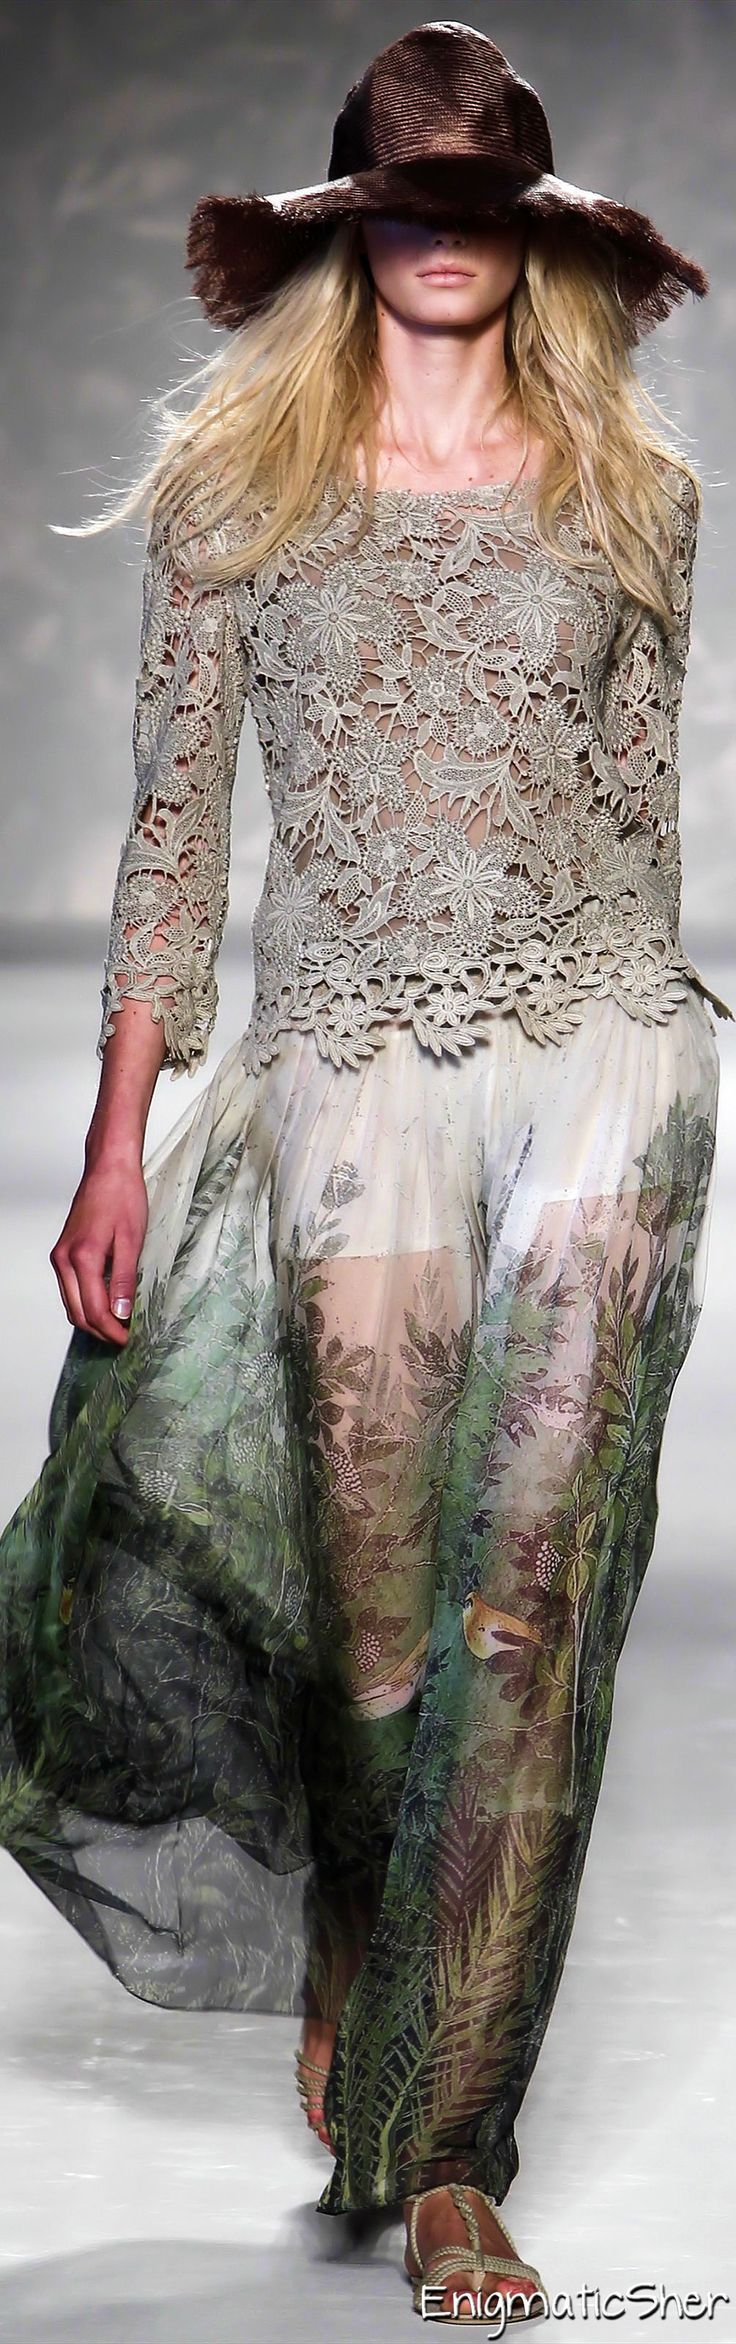 Alberta Ferretti Spring Summer 2011 Ready-To-Wear